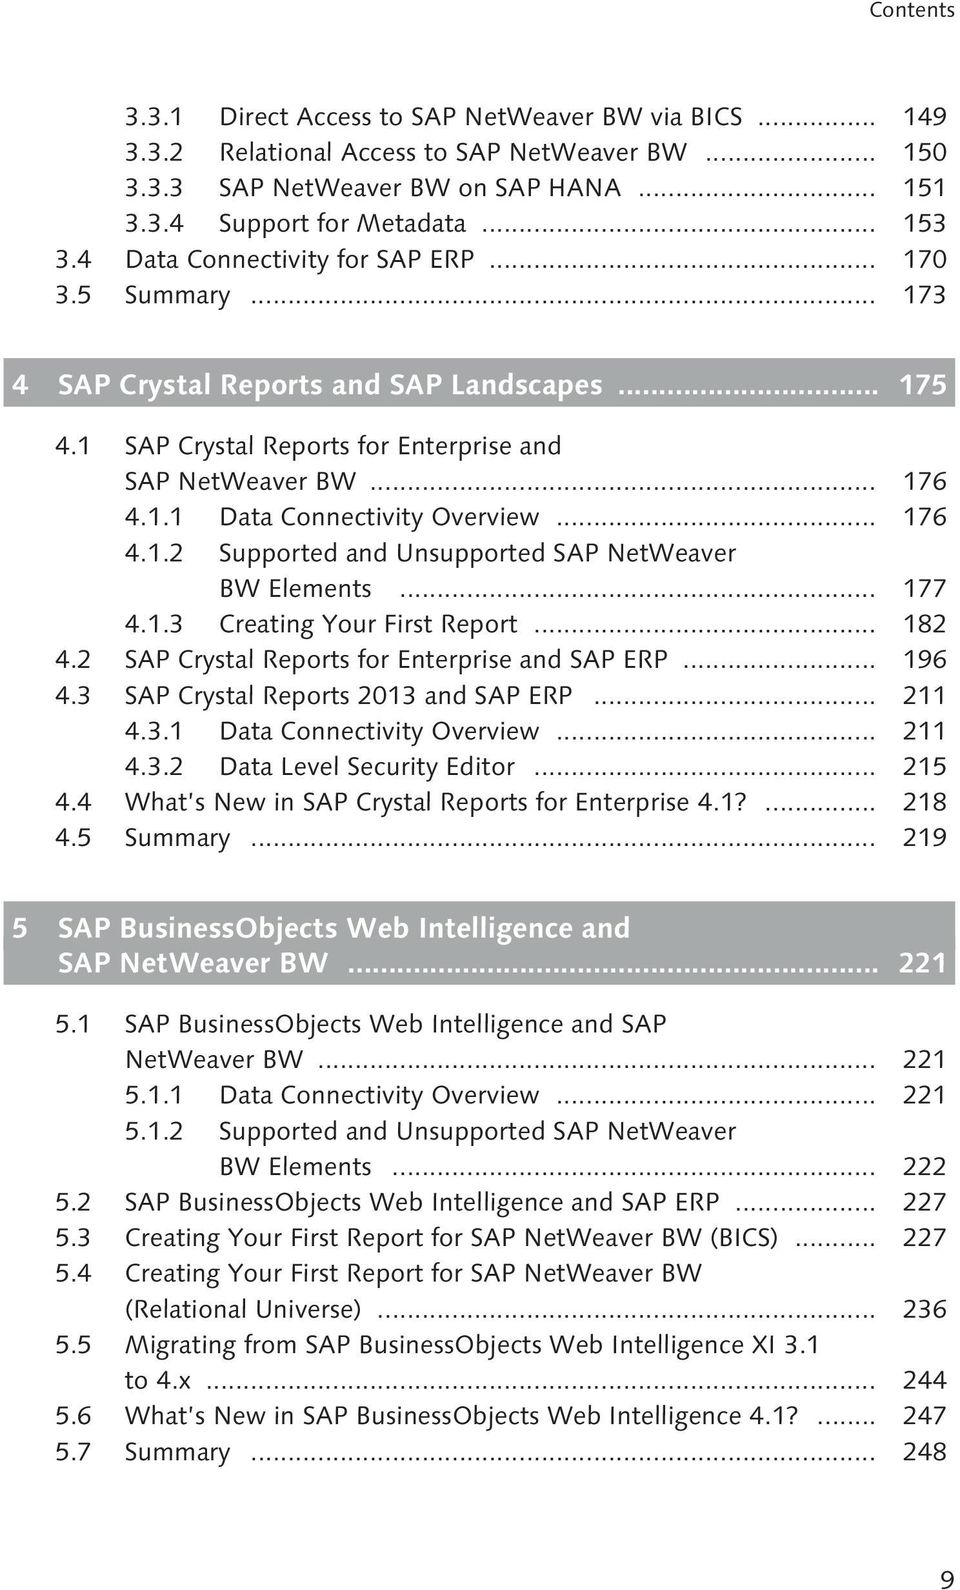 .. 176 4.1.2 Supported and Unsupported SAP NetWeaver BW Elements... 177 4.1.3 Creating Your First Report... 182 4.2 SAP Crystal Reports Enterprise and SAP ERP... 196 4.